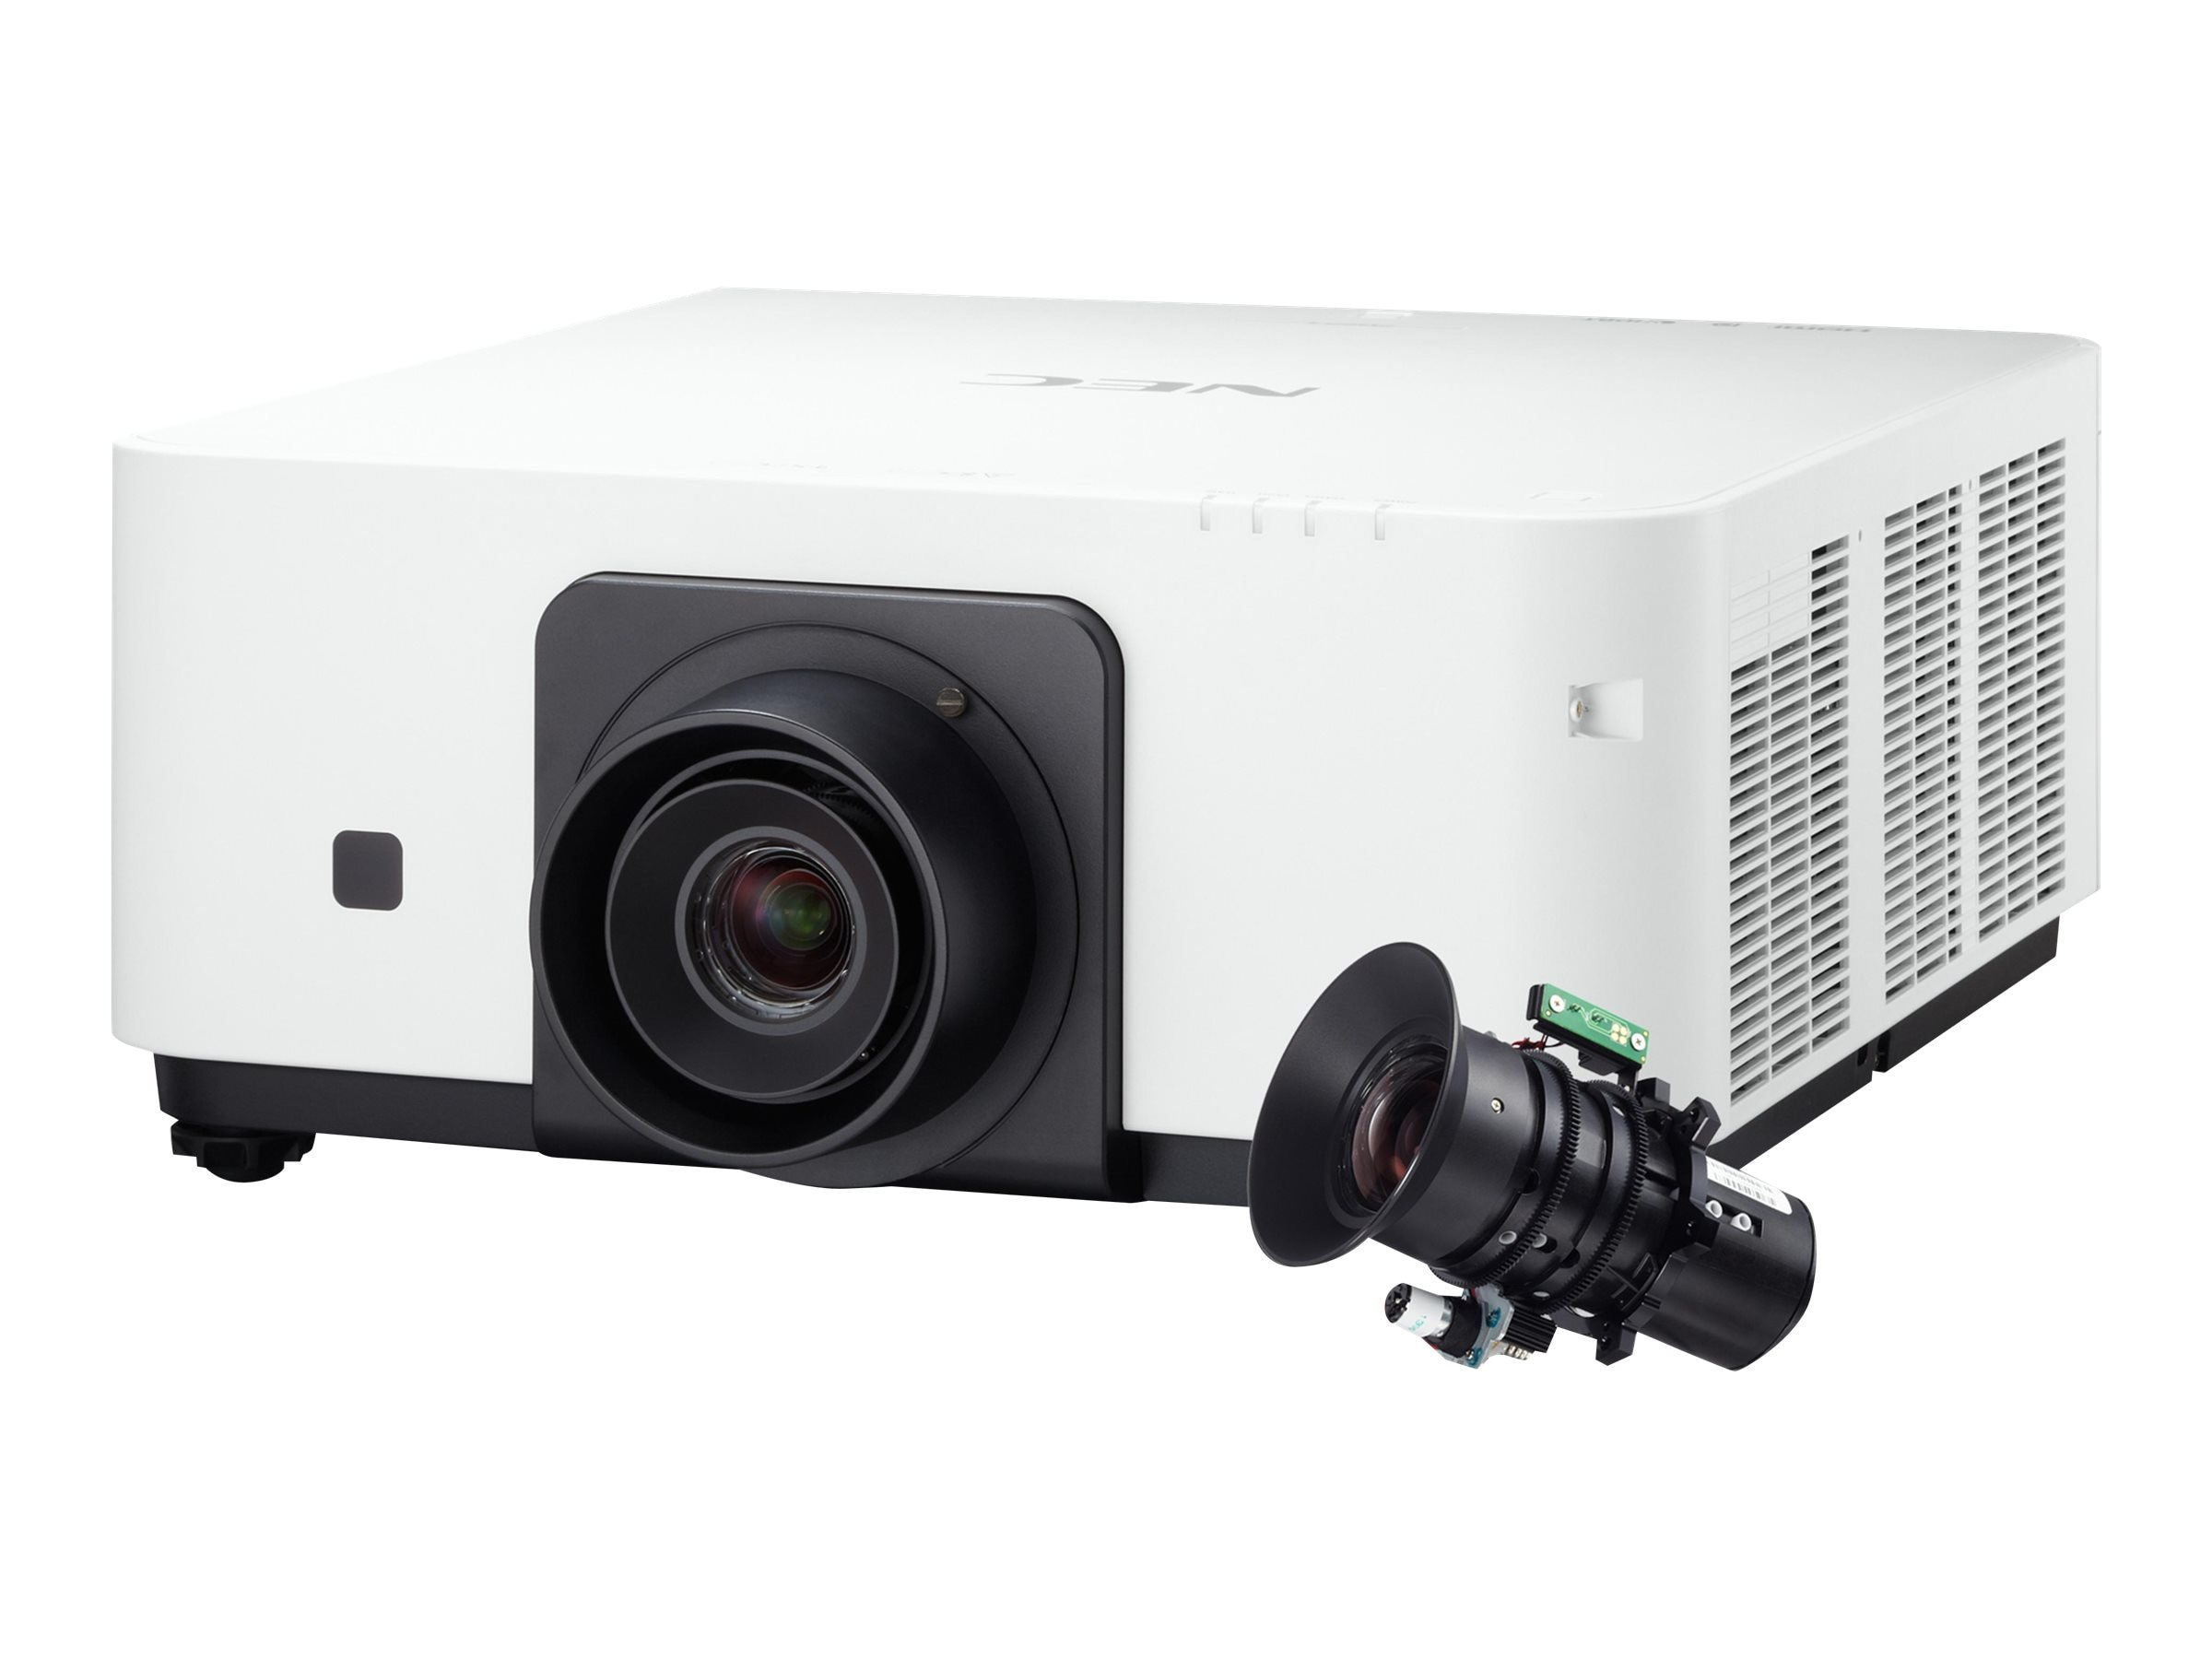 NEC PX602UL WUXGA DLP Projector, 6000 Lumens, White with Zoom Lens, NP-PX602UL-W-35, 18111657, Projectors